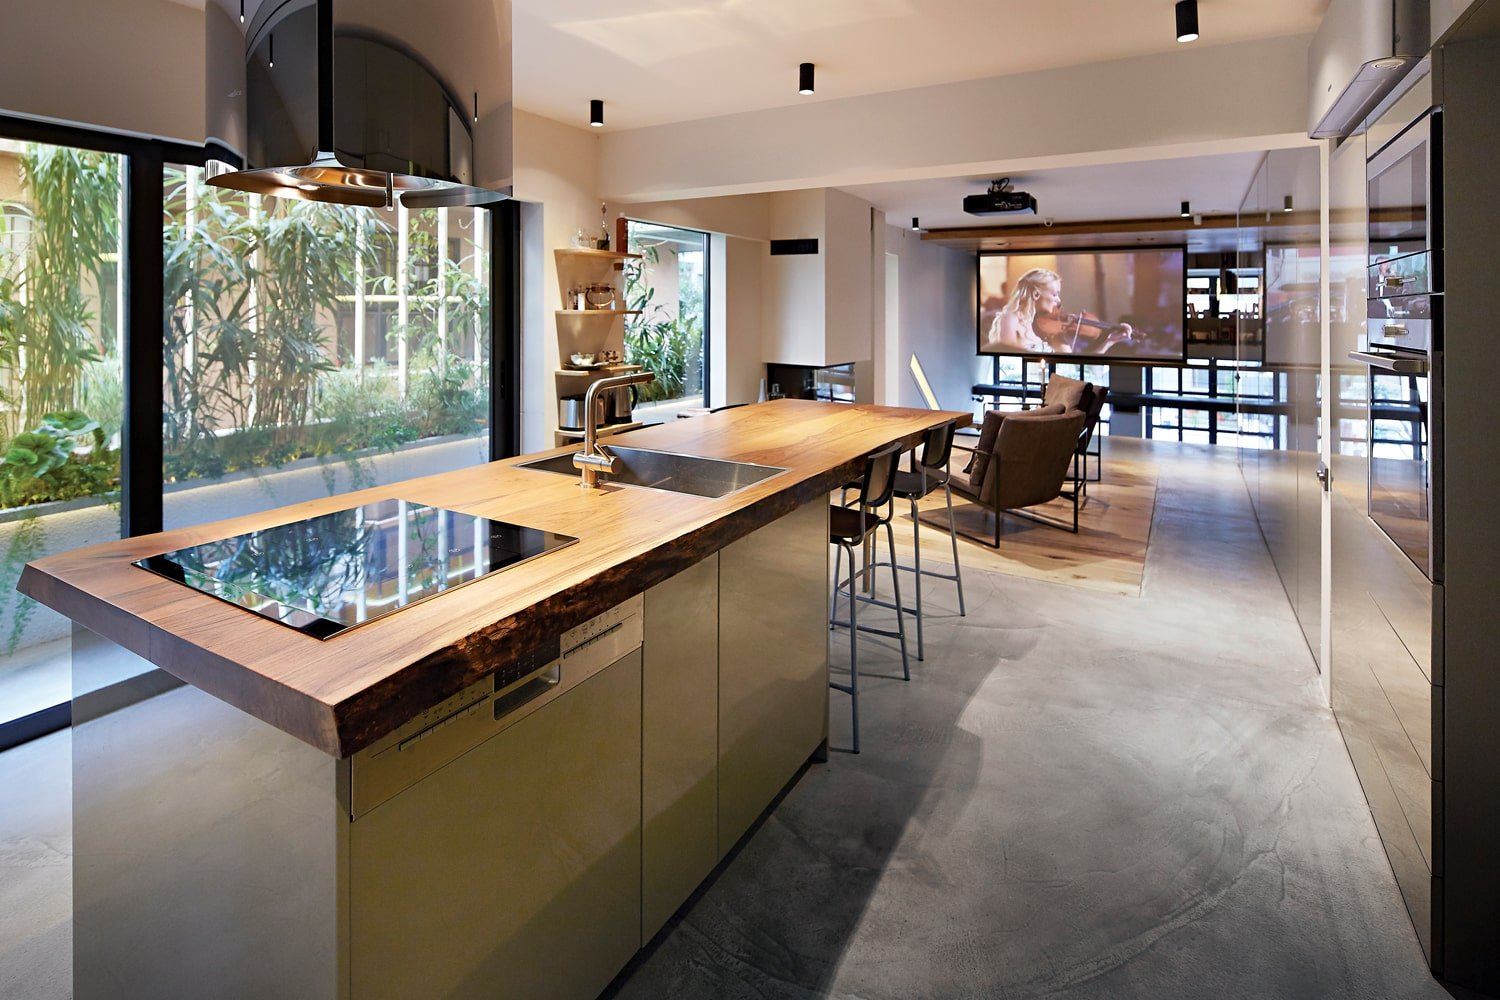 This large wooden countertop of the kicthen houses the modern glass-top stove and the sink topped with a white ceiling with modern lighting.